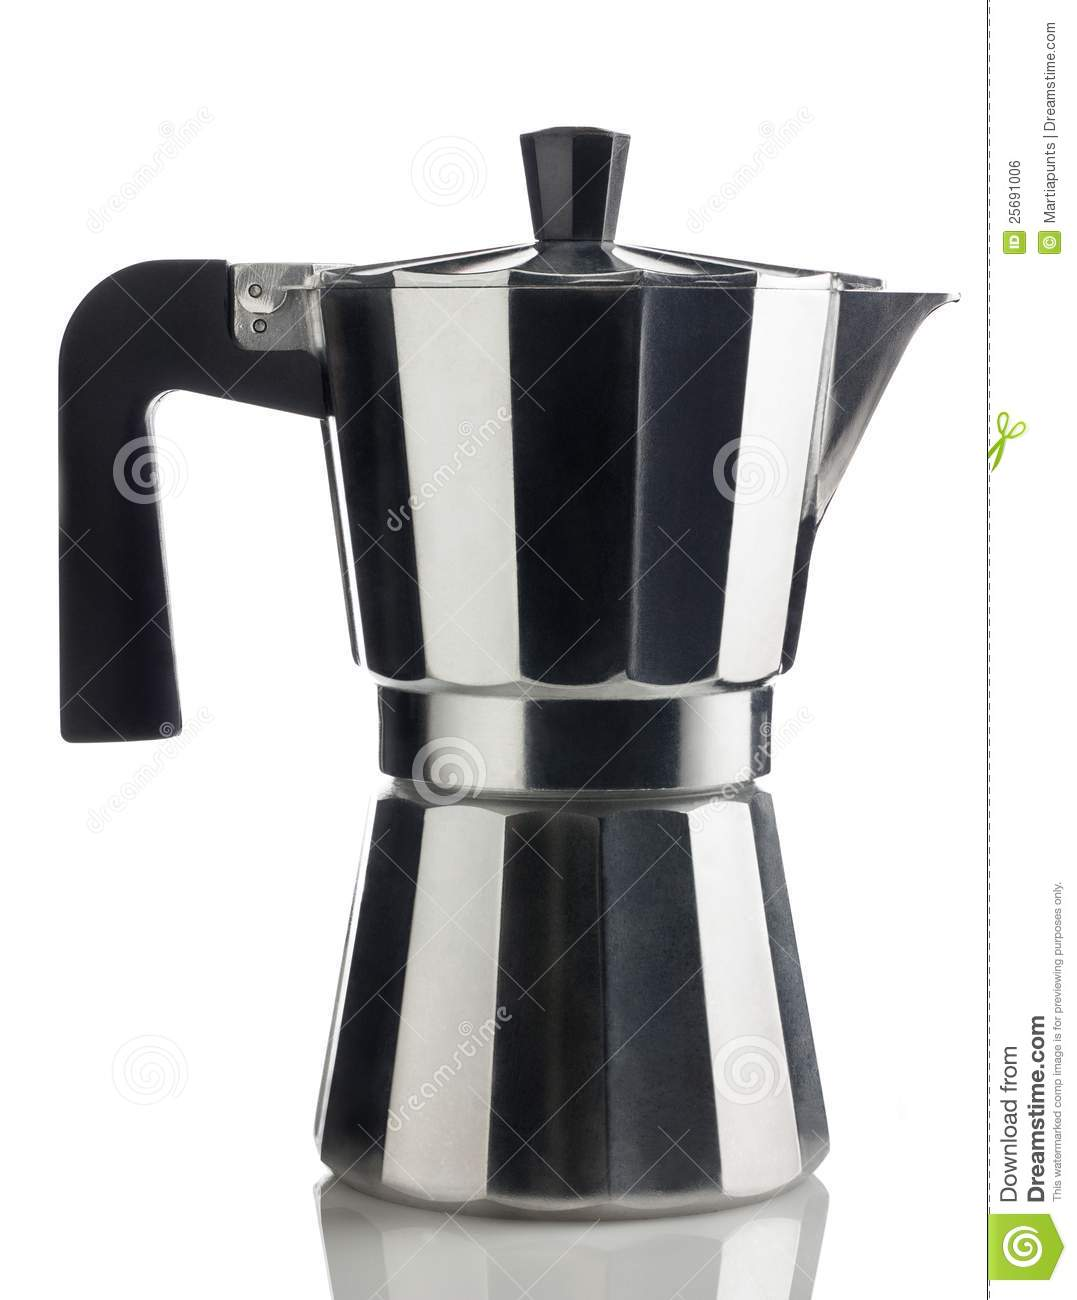 Italian Coffee Maker Royalty Free Stock Image - Image: 25691006